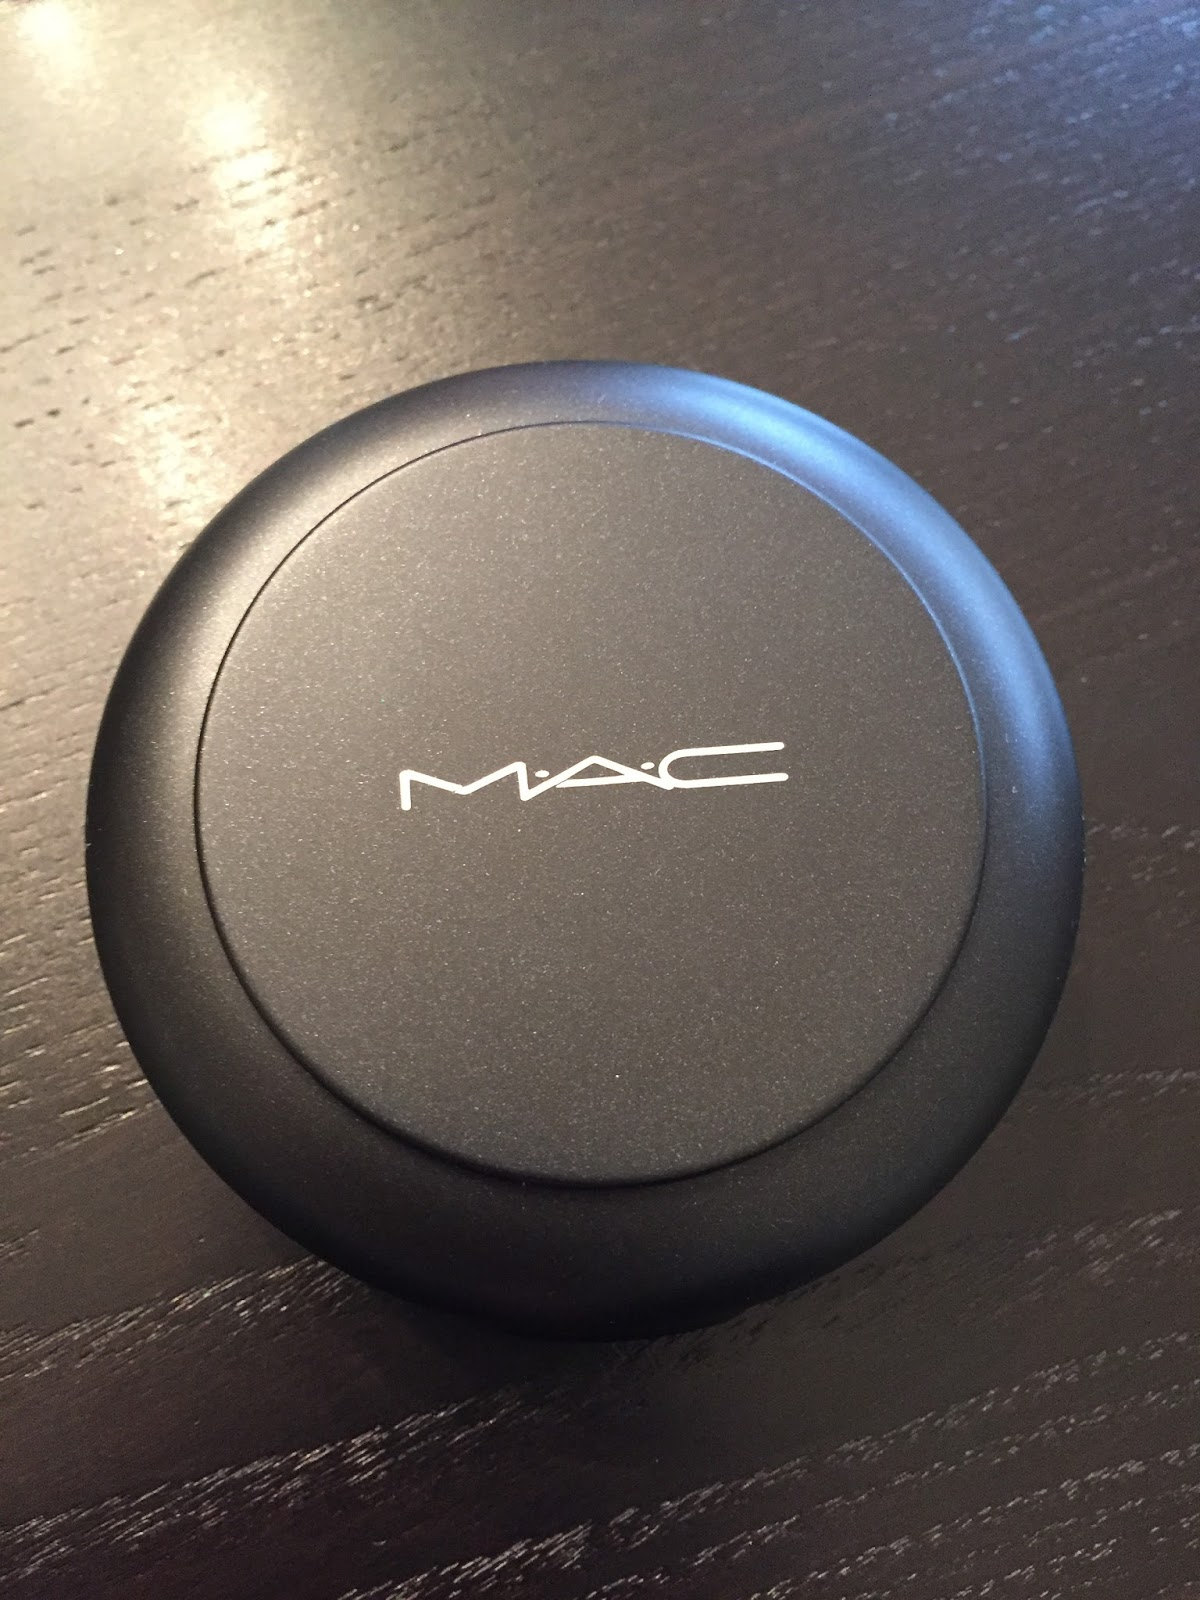 Mac Matchmaster Cushion Foundation Review And Comparison